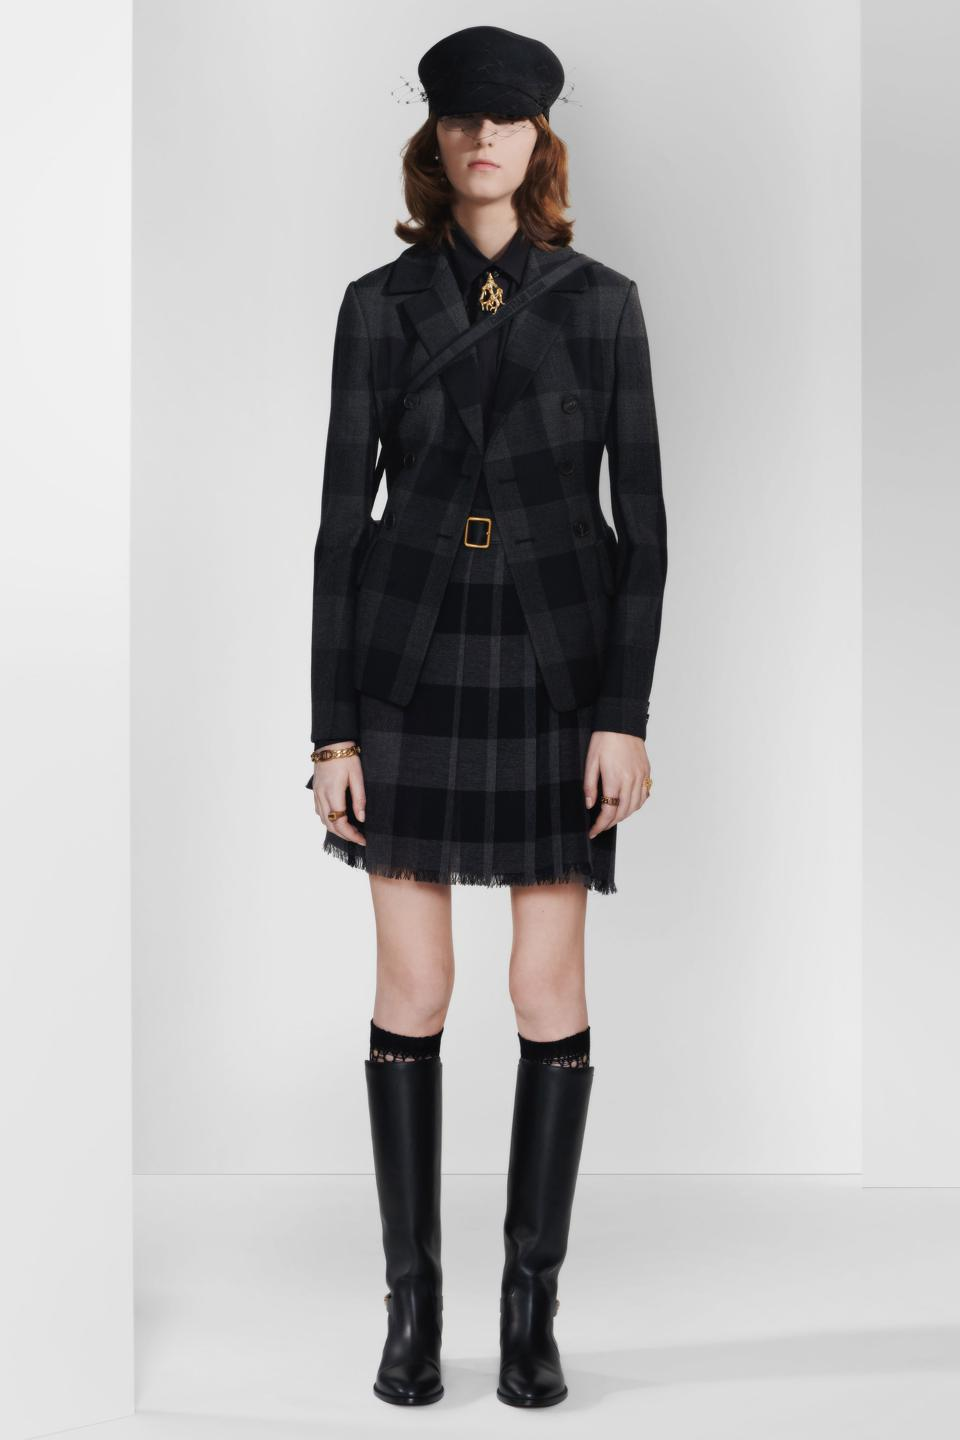 Black and Gray Checkered Wool Twill Single-Breasted Dior Jacket